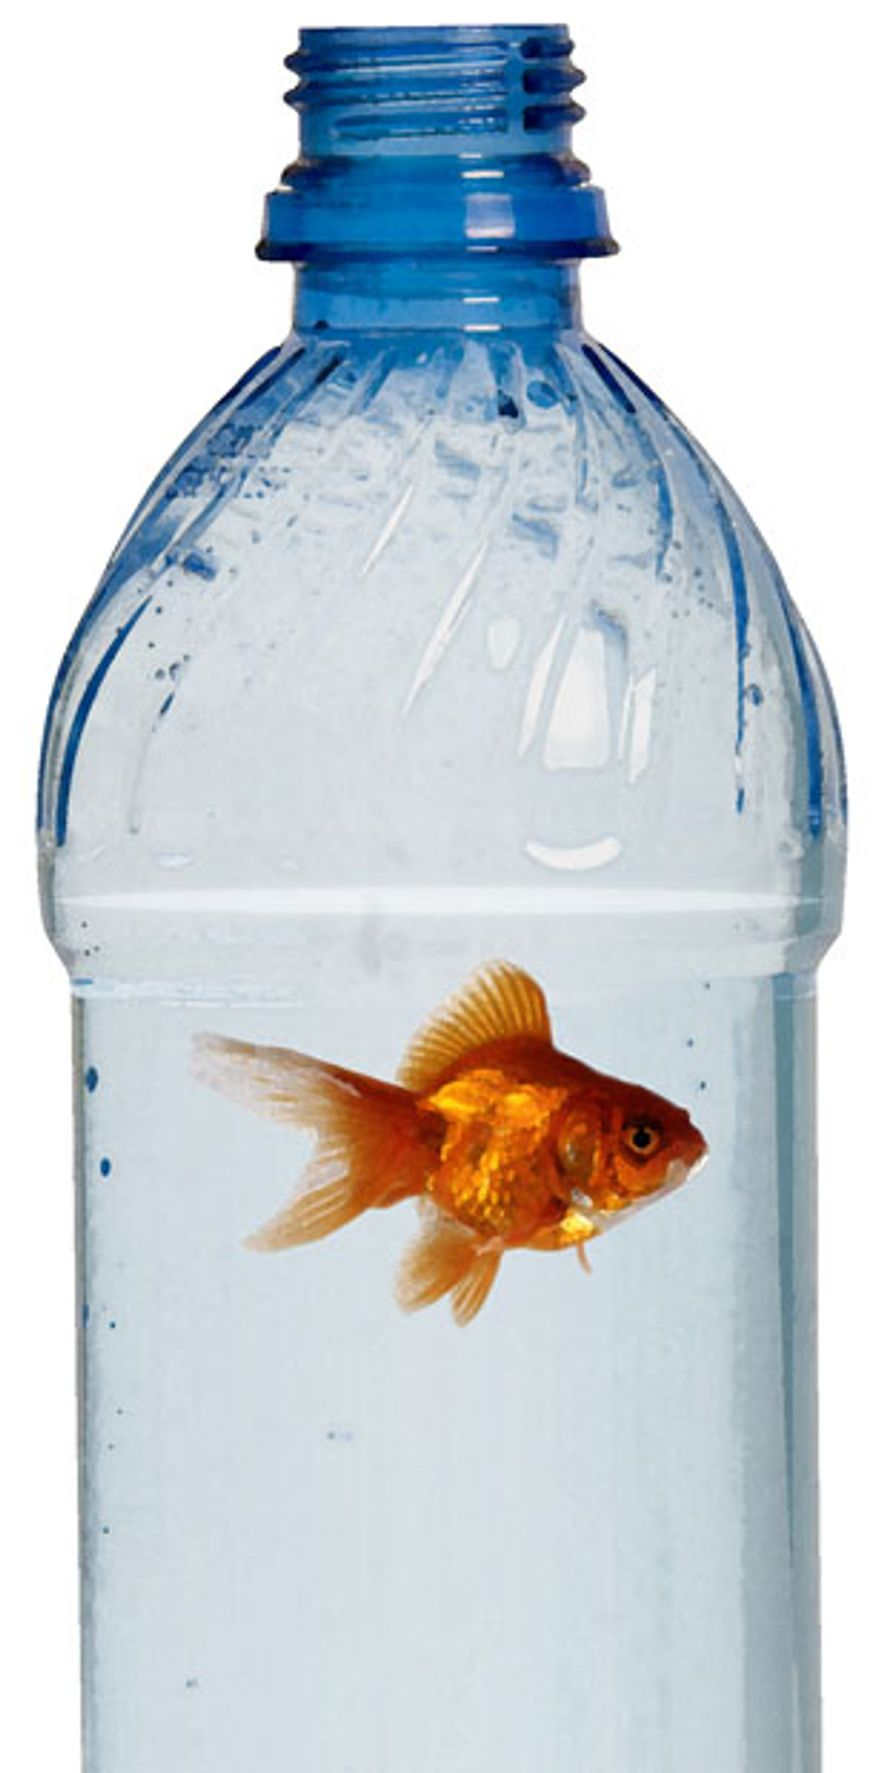 Illustration: Bottle fish by Greg Groesch for The Washington Times